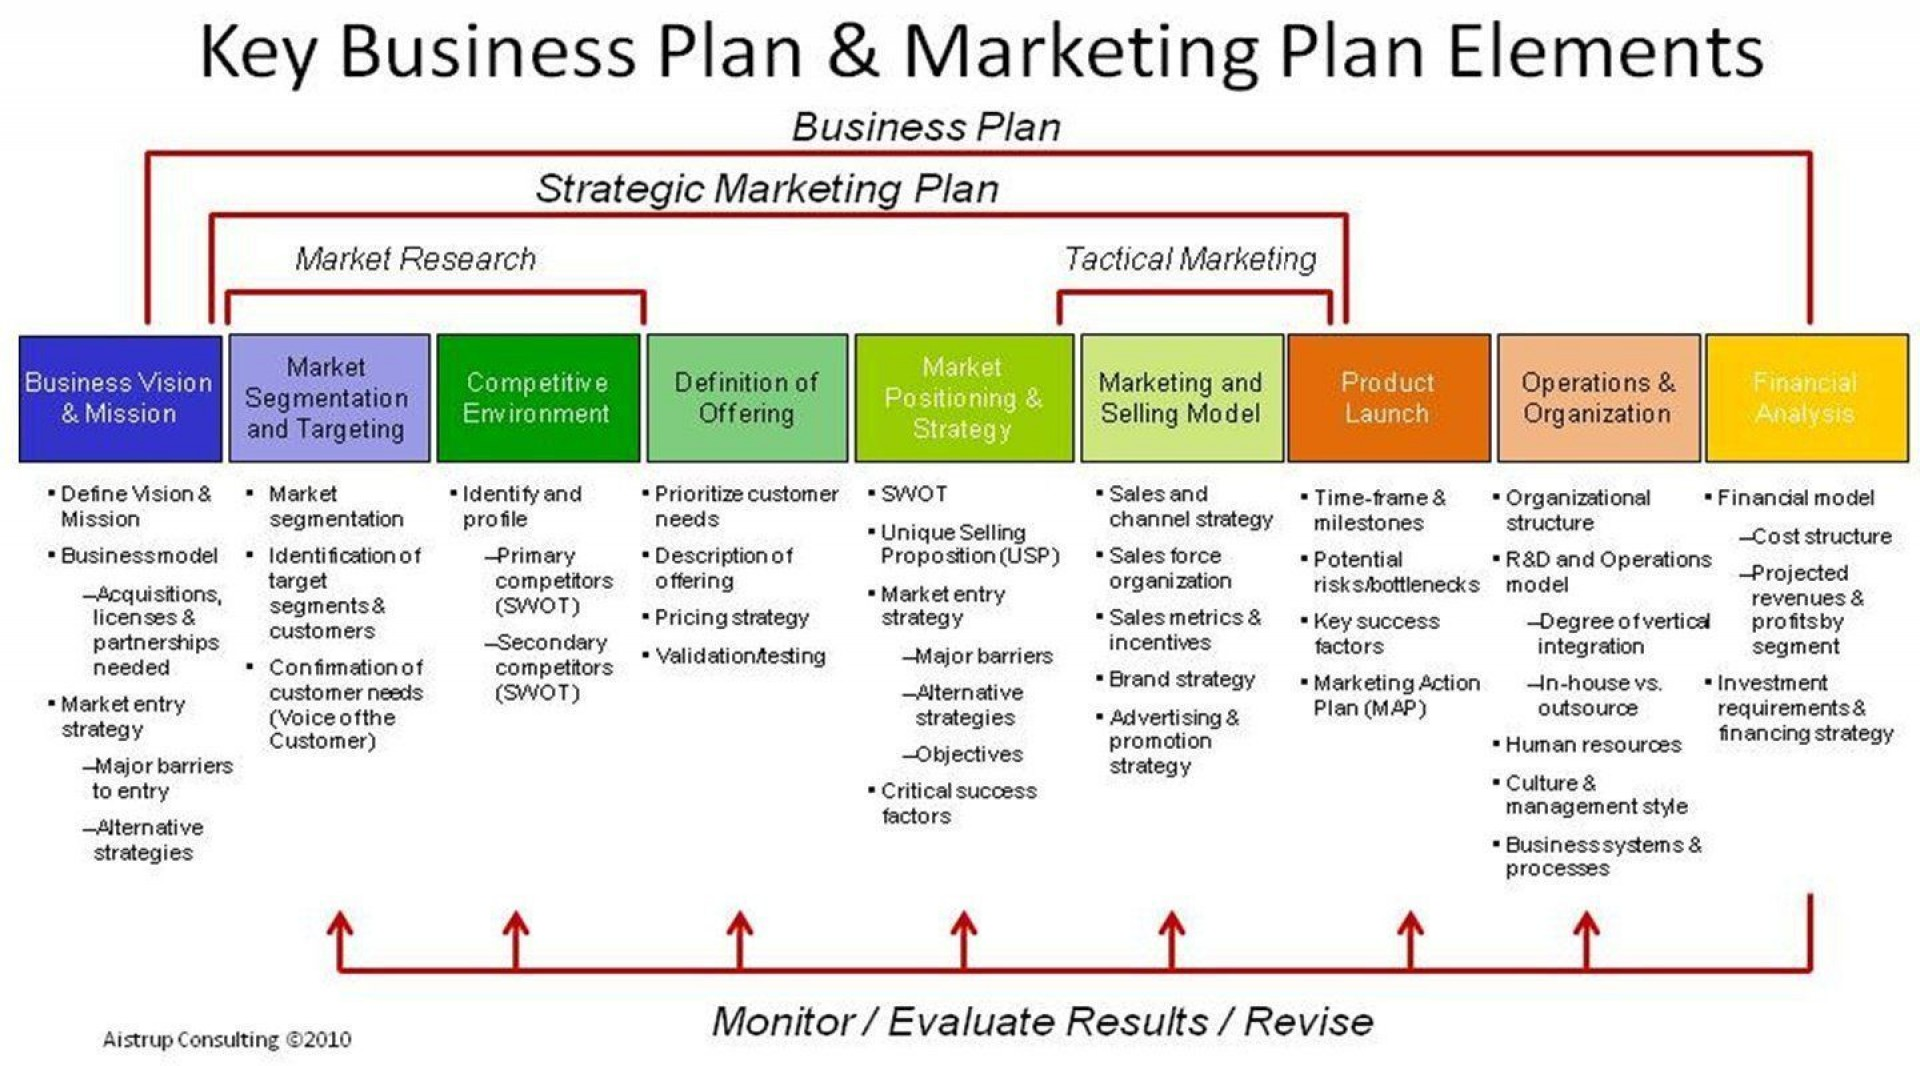 002 Best Sale And Marketing Plan Template Free High Def  Download Hotel1920